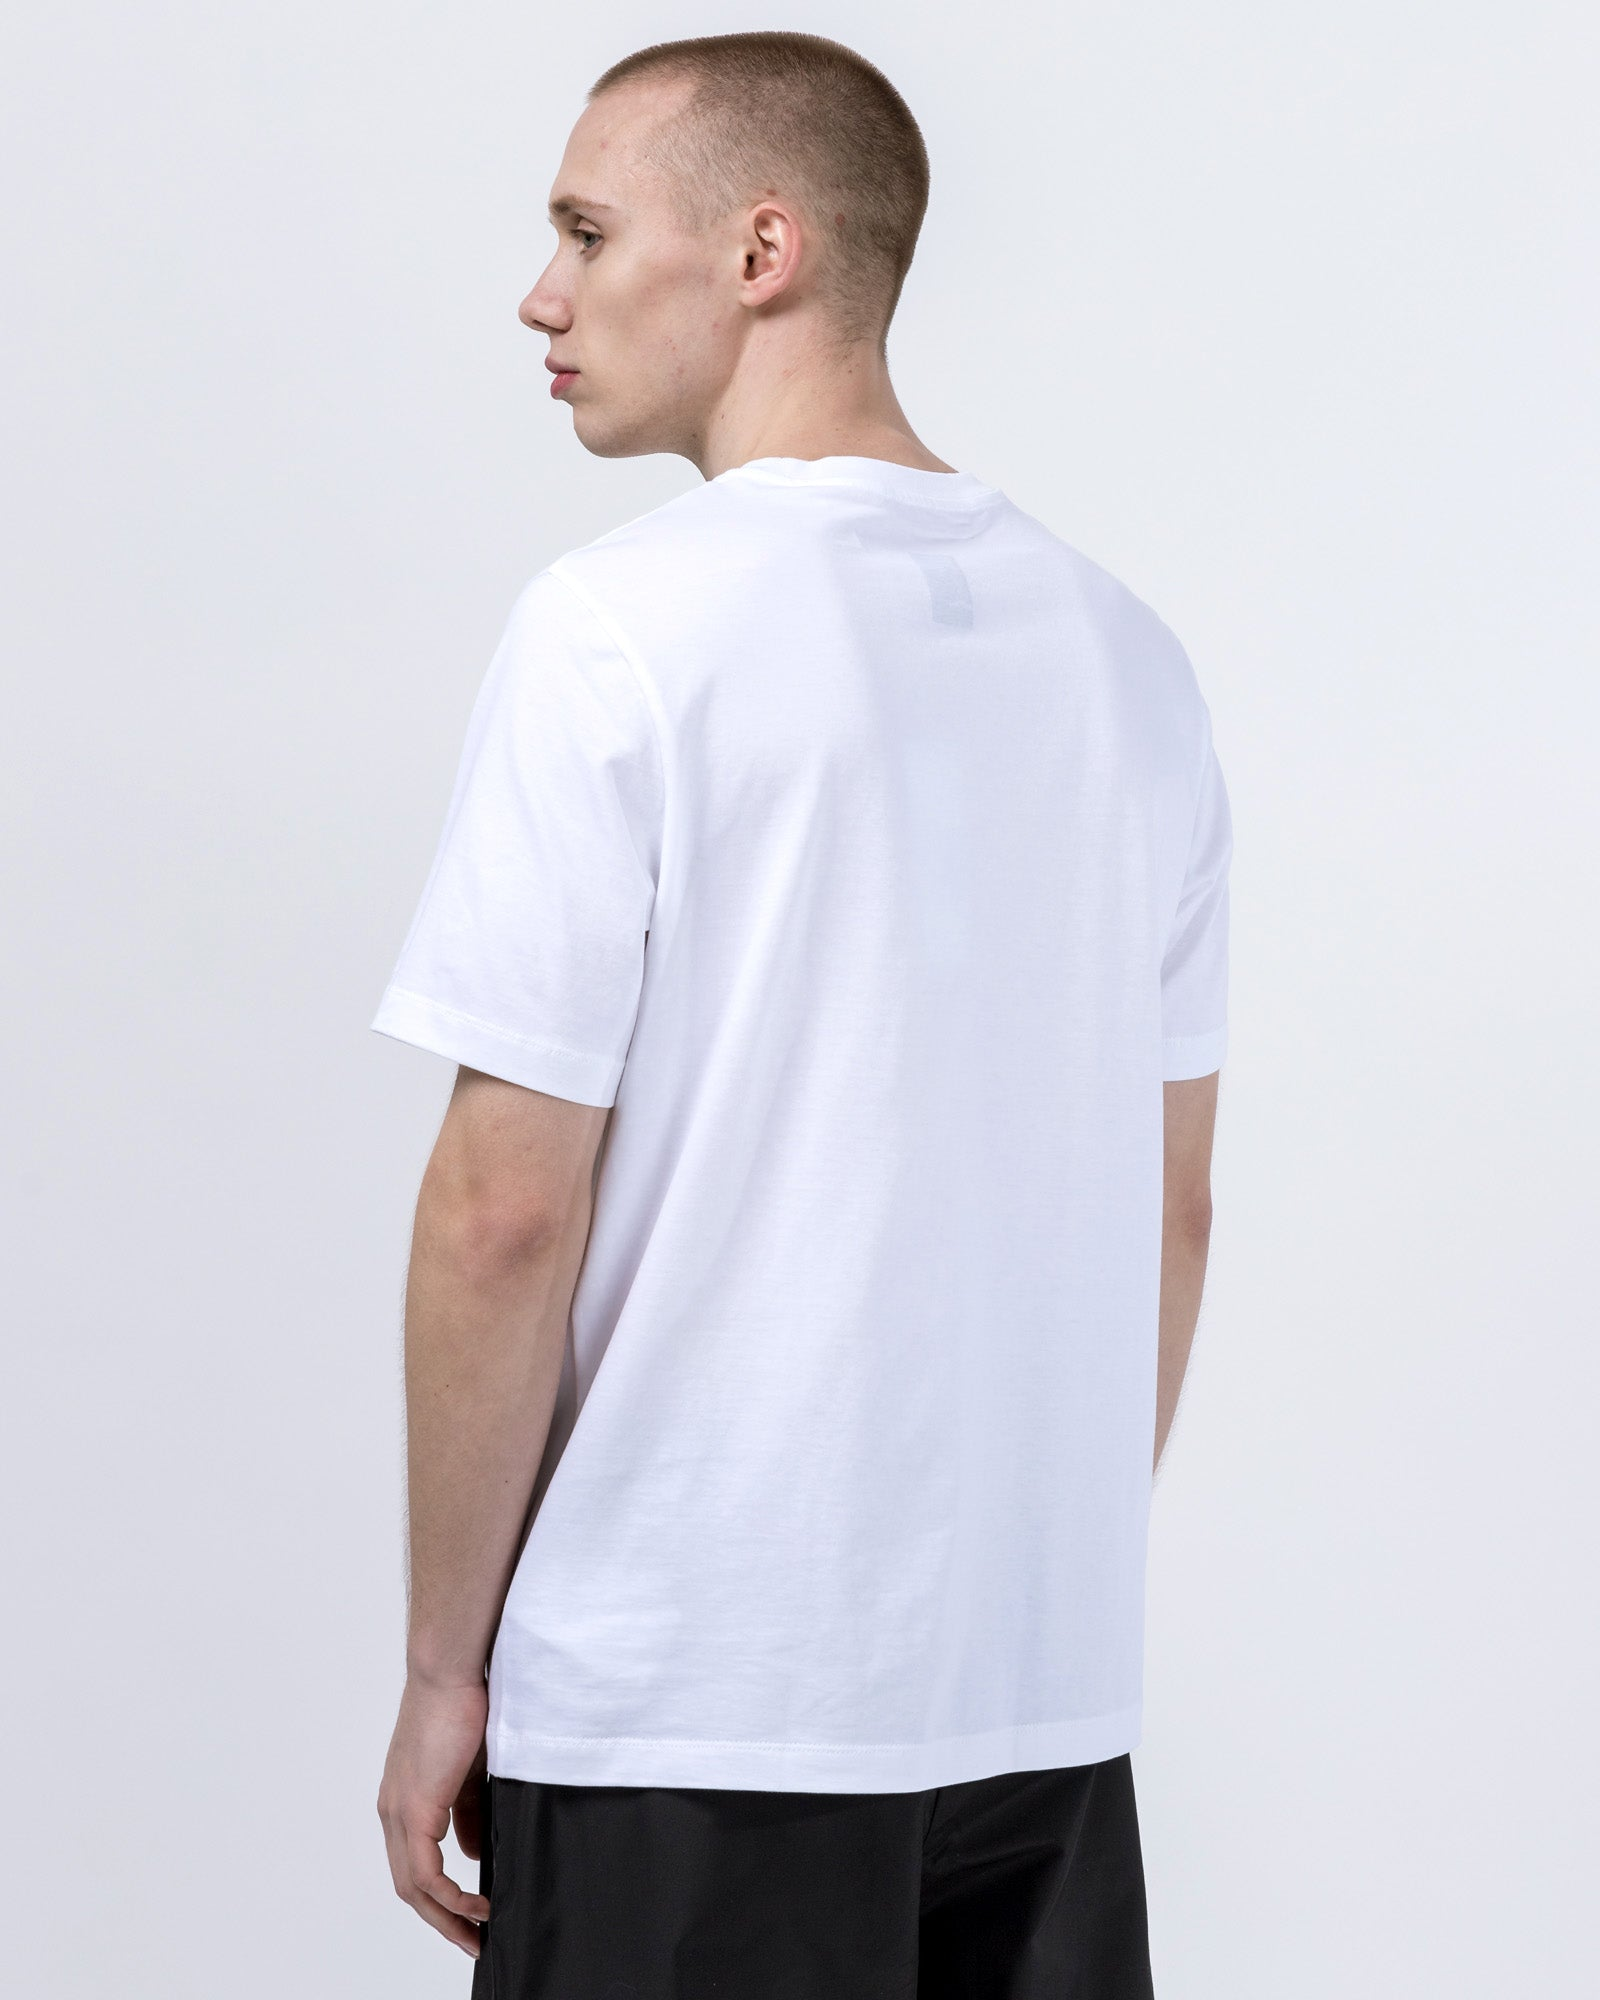 Space T-Shirt in White | OAMC